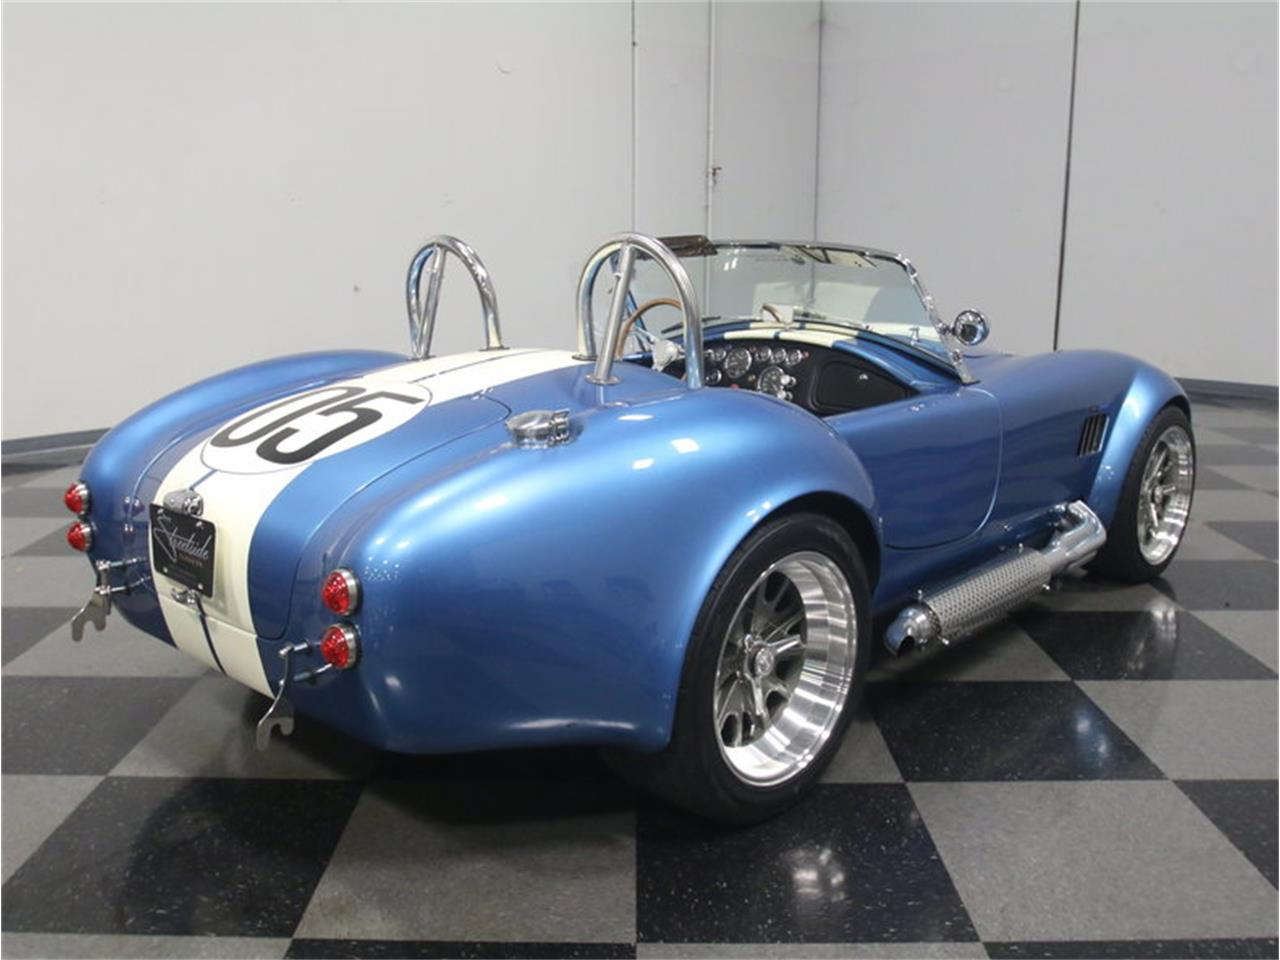 Large Picture of '65 Backdraft Racing Cobra located in Georgia - $59,995.00 Offered by Streetside Classics - Atlanta - M9QO